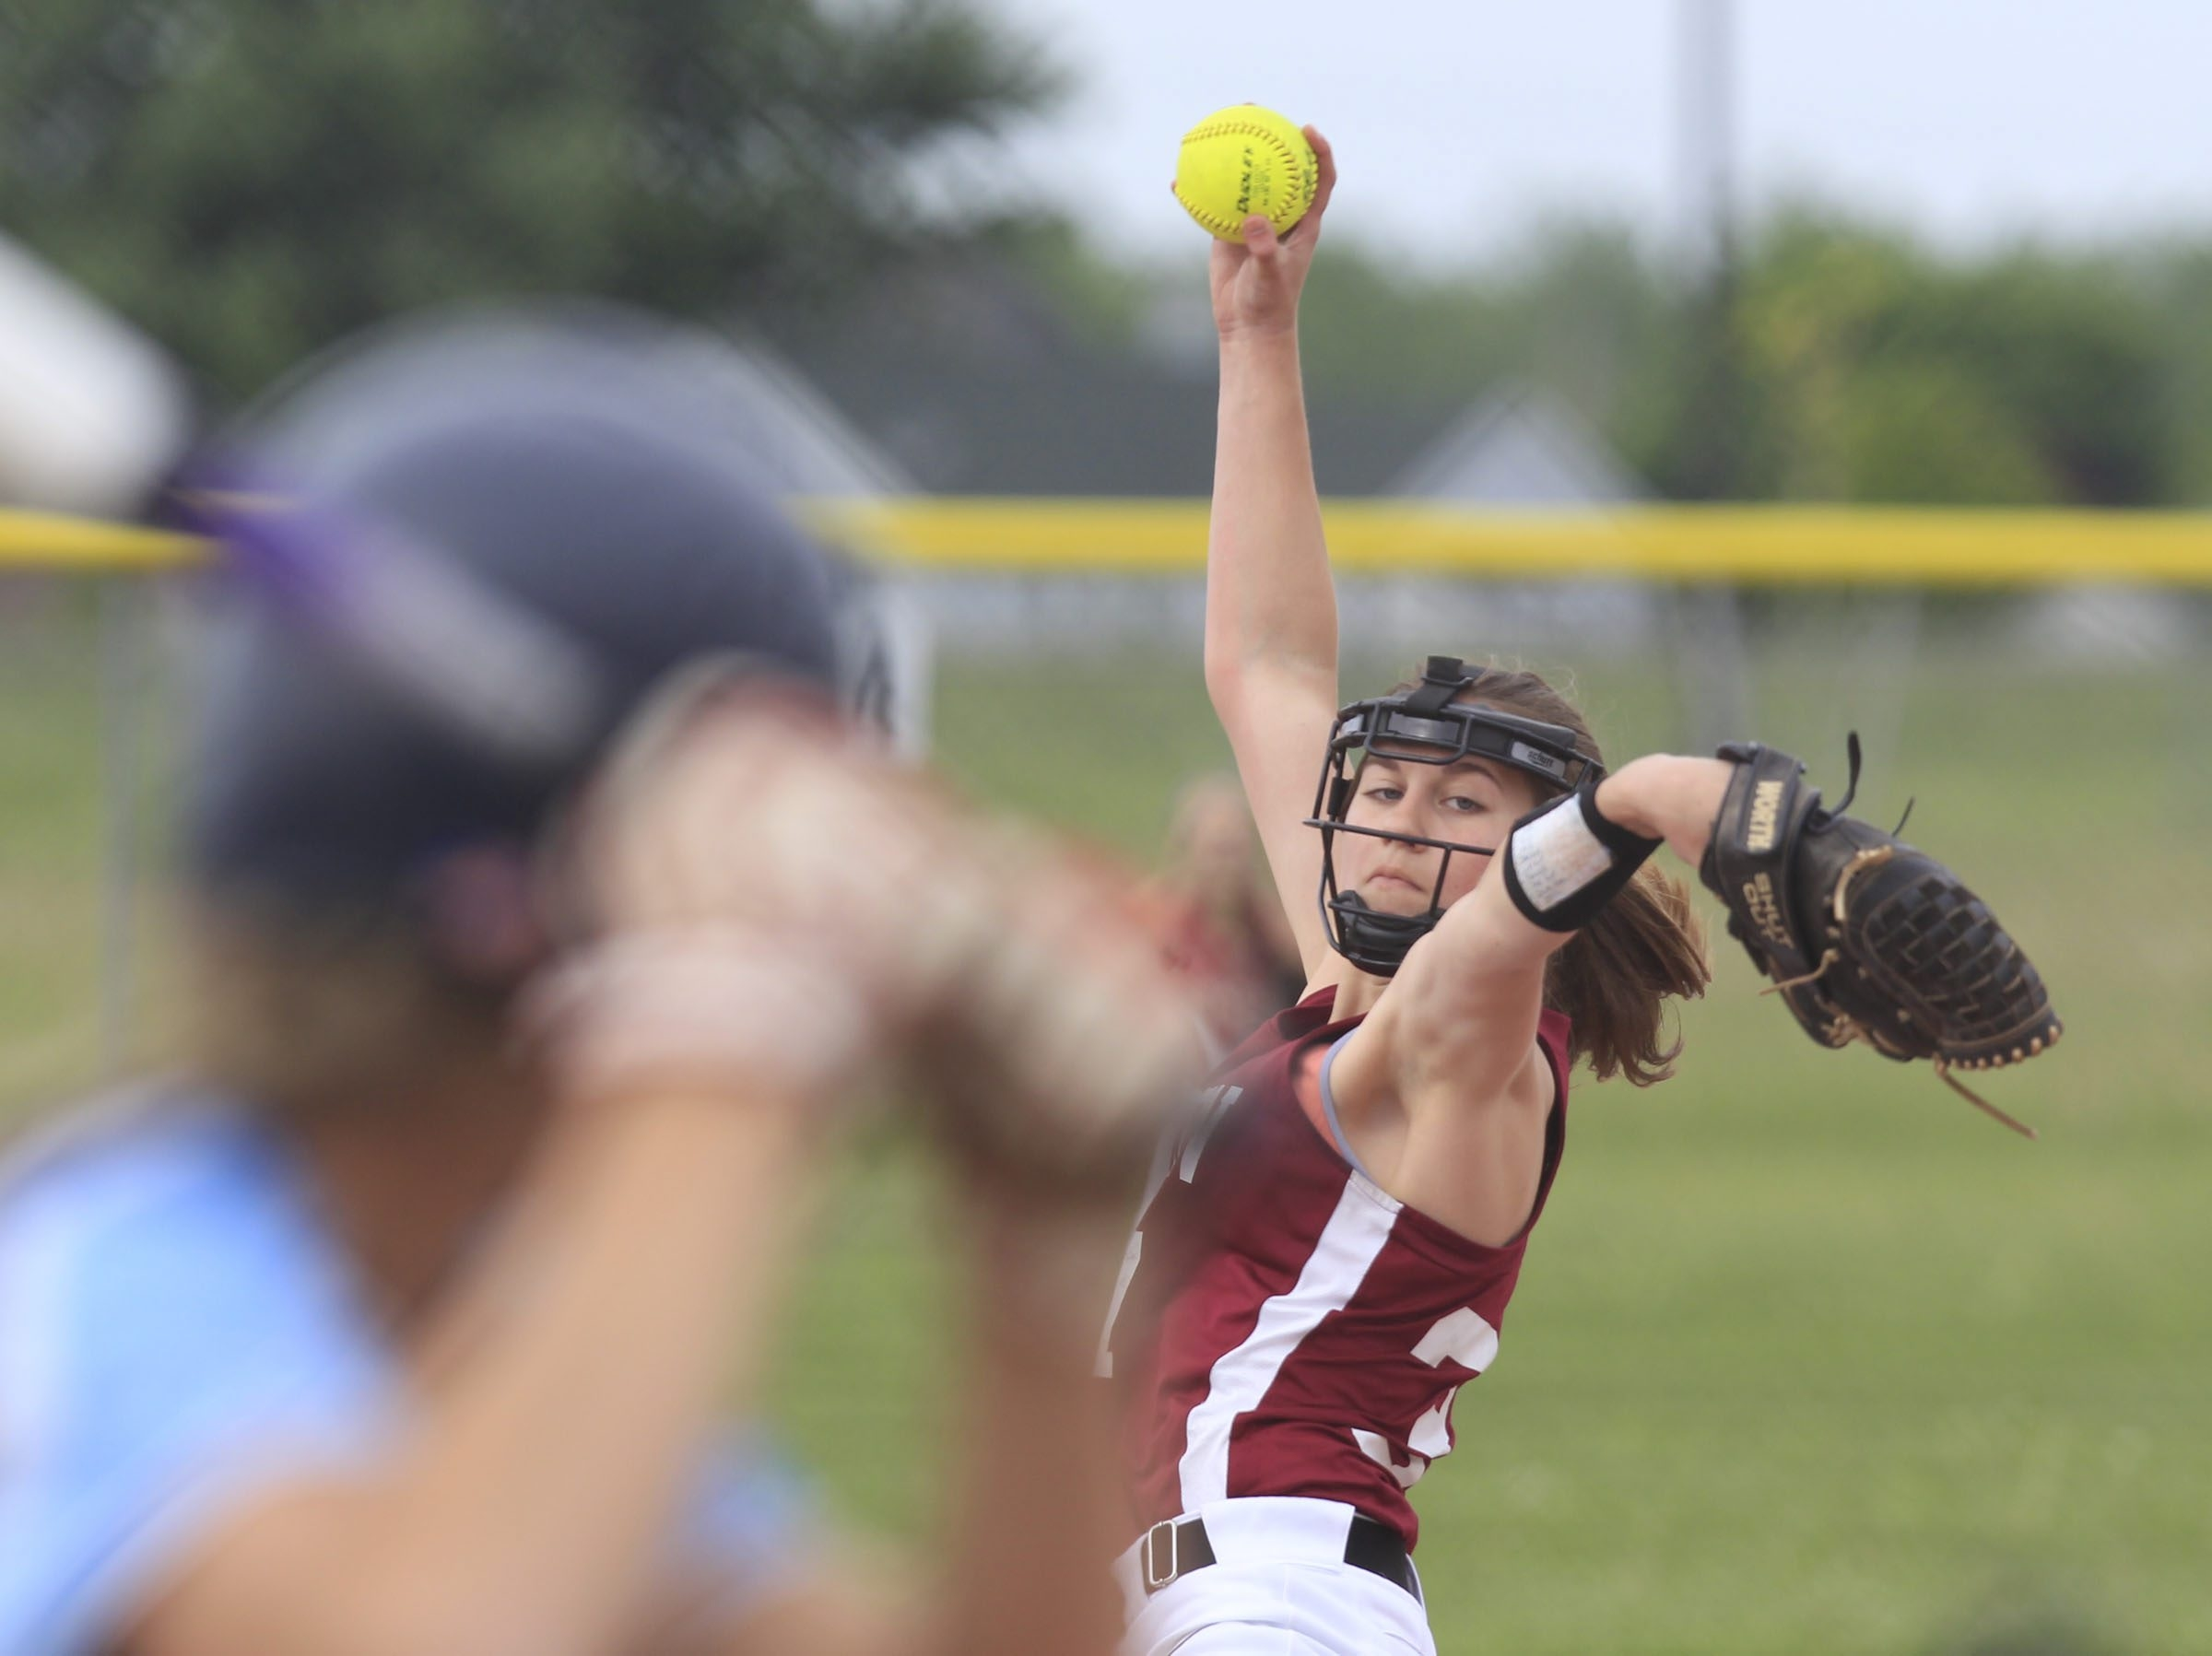 Eden pitcher Jill Murray, with an 8-0 record, struck out 120 of the 239 batters she faced this season. She and the Raiders  face Center Moriches of Long Island's Section XI in a semifinal game Saturday in Glens Falls.